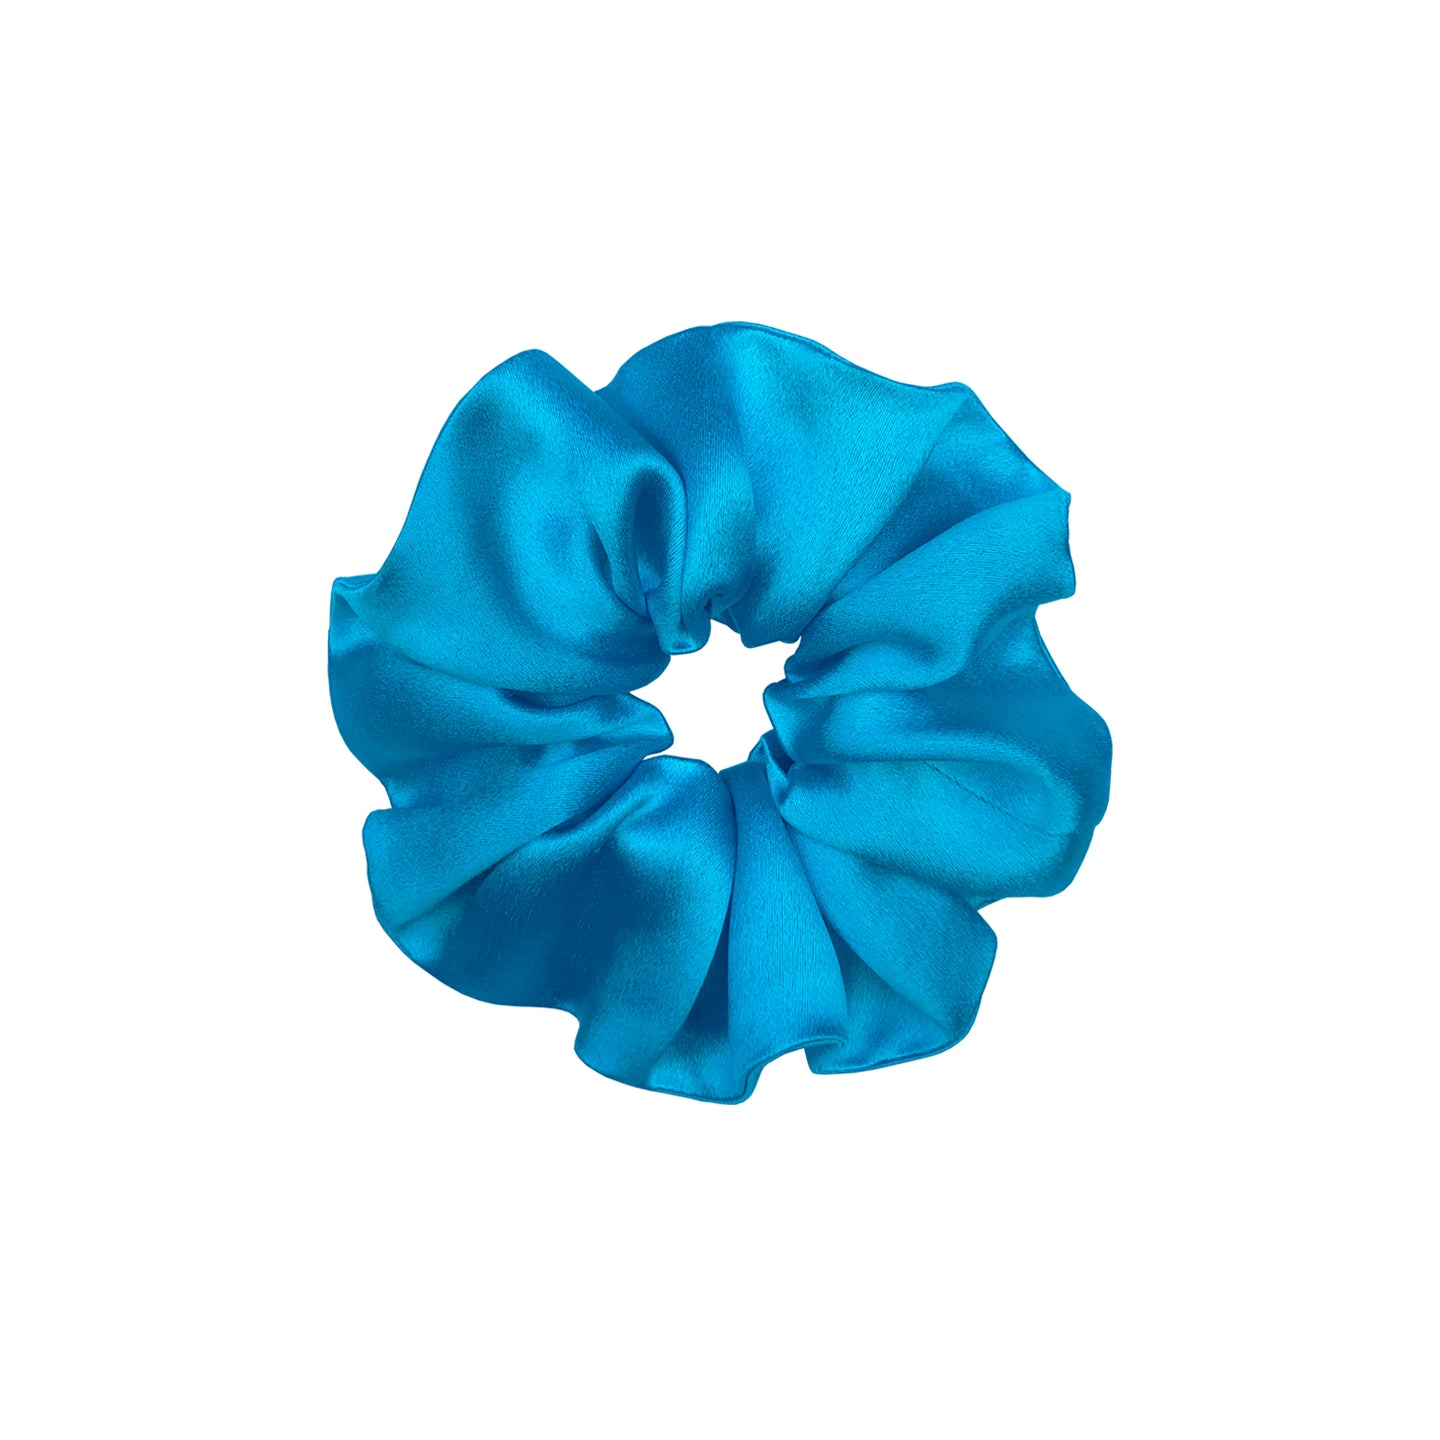 Christie Scrunchie in Turquoise